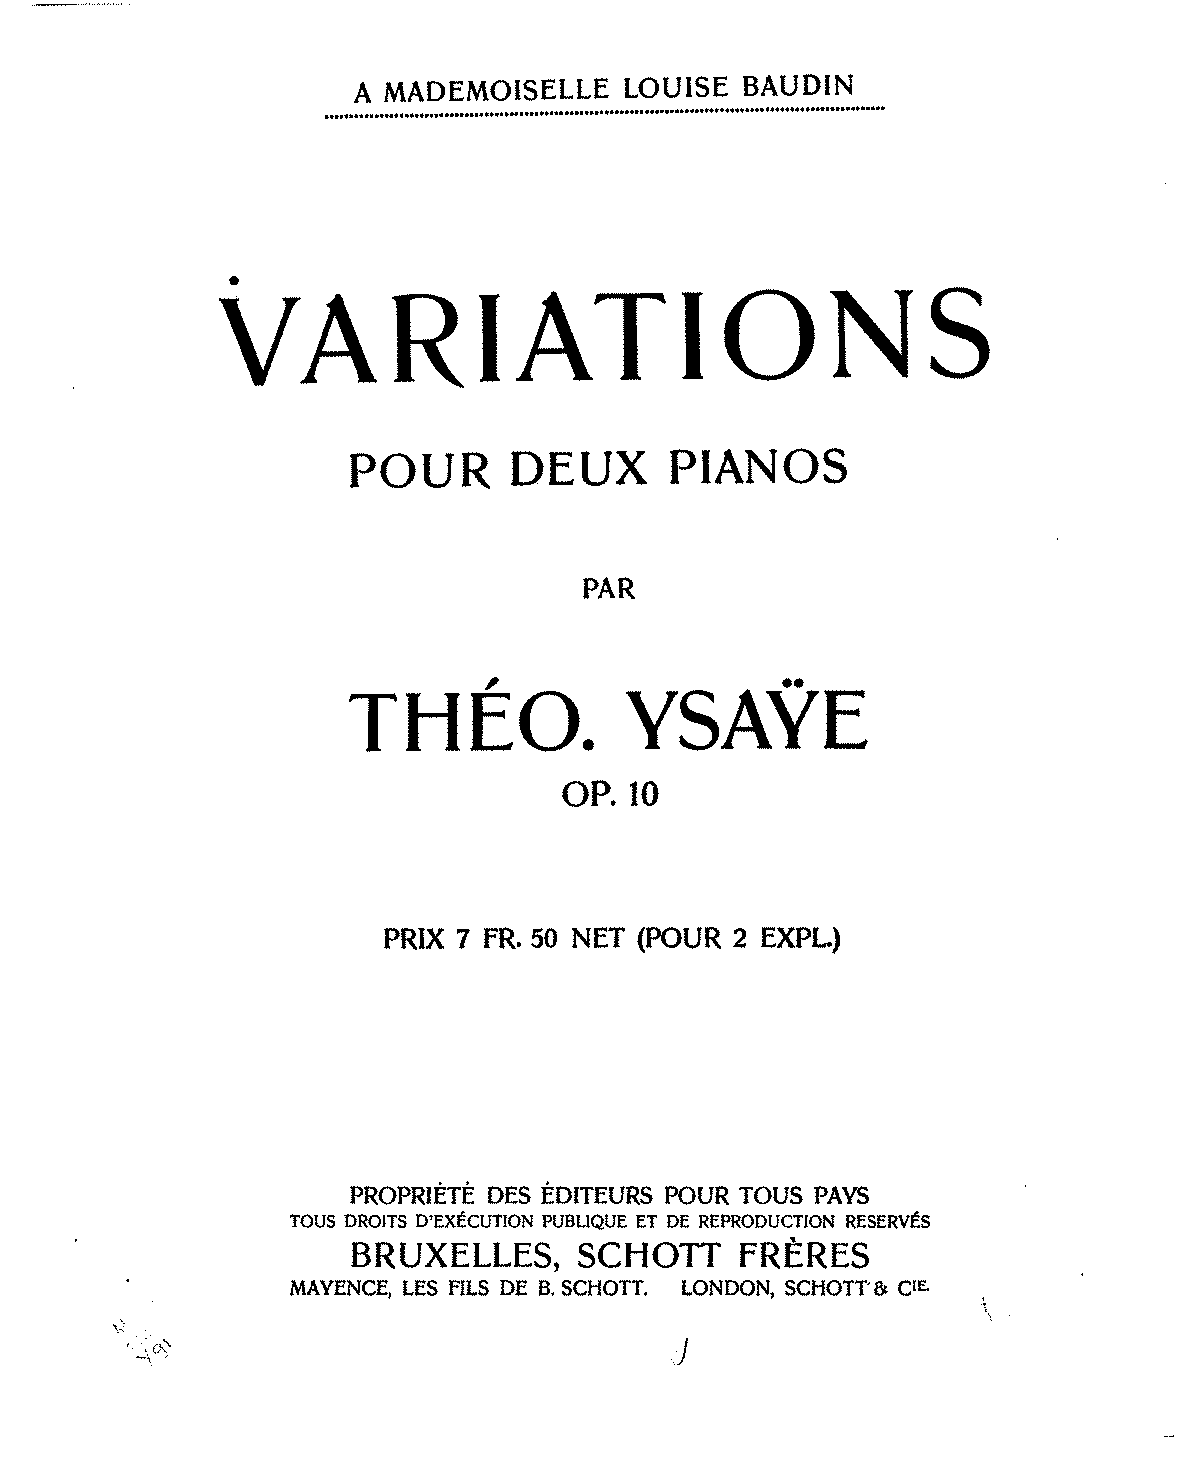 Ysaye, T. - Op.10 Variations for 2 Pianos.pdf